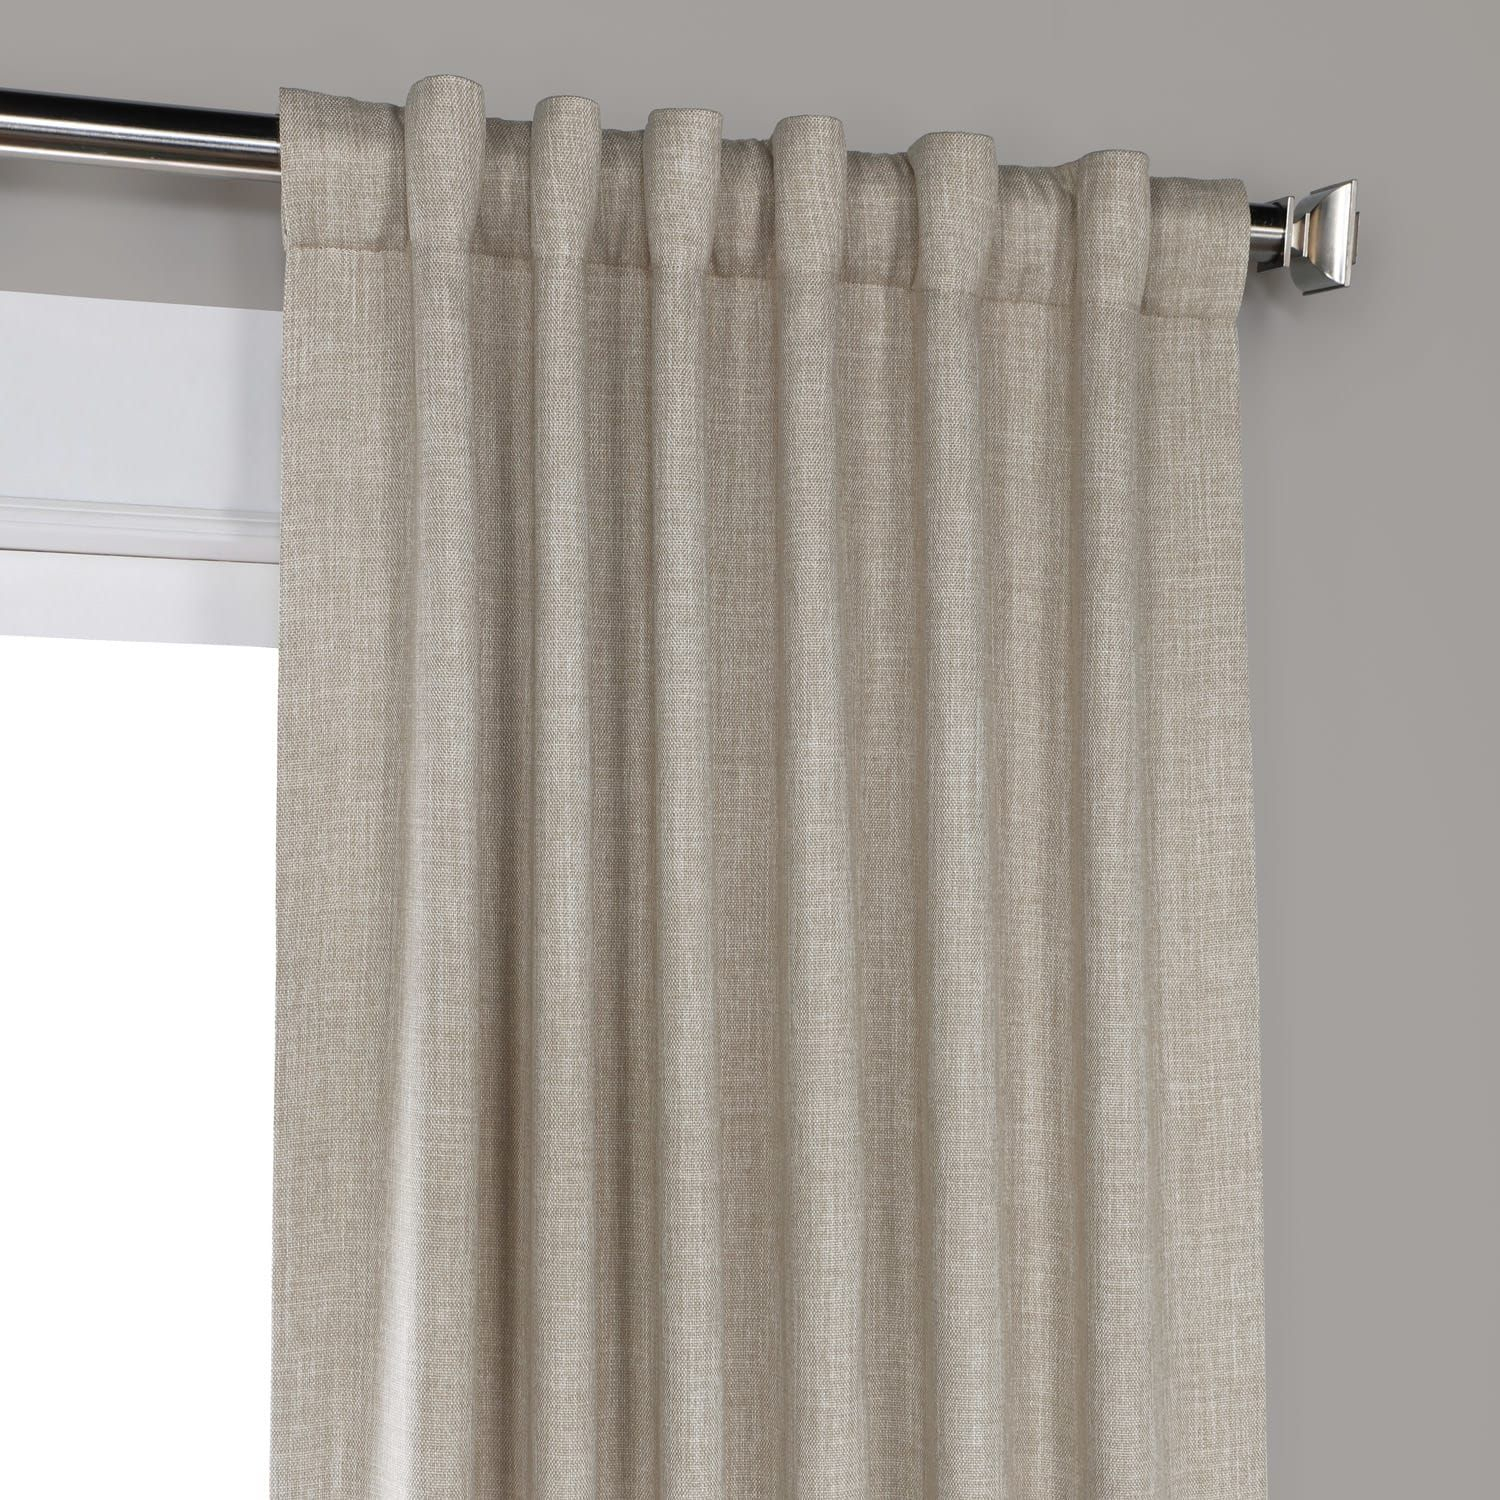 Oatmeal Faux Linen Blackout Room Darkening Curtain In Faux Linen Blackout Curtains (View 11 of 20)